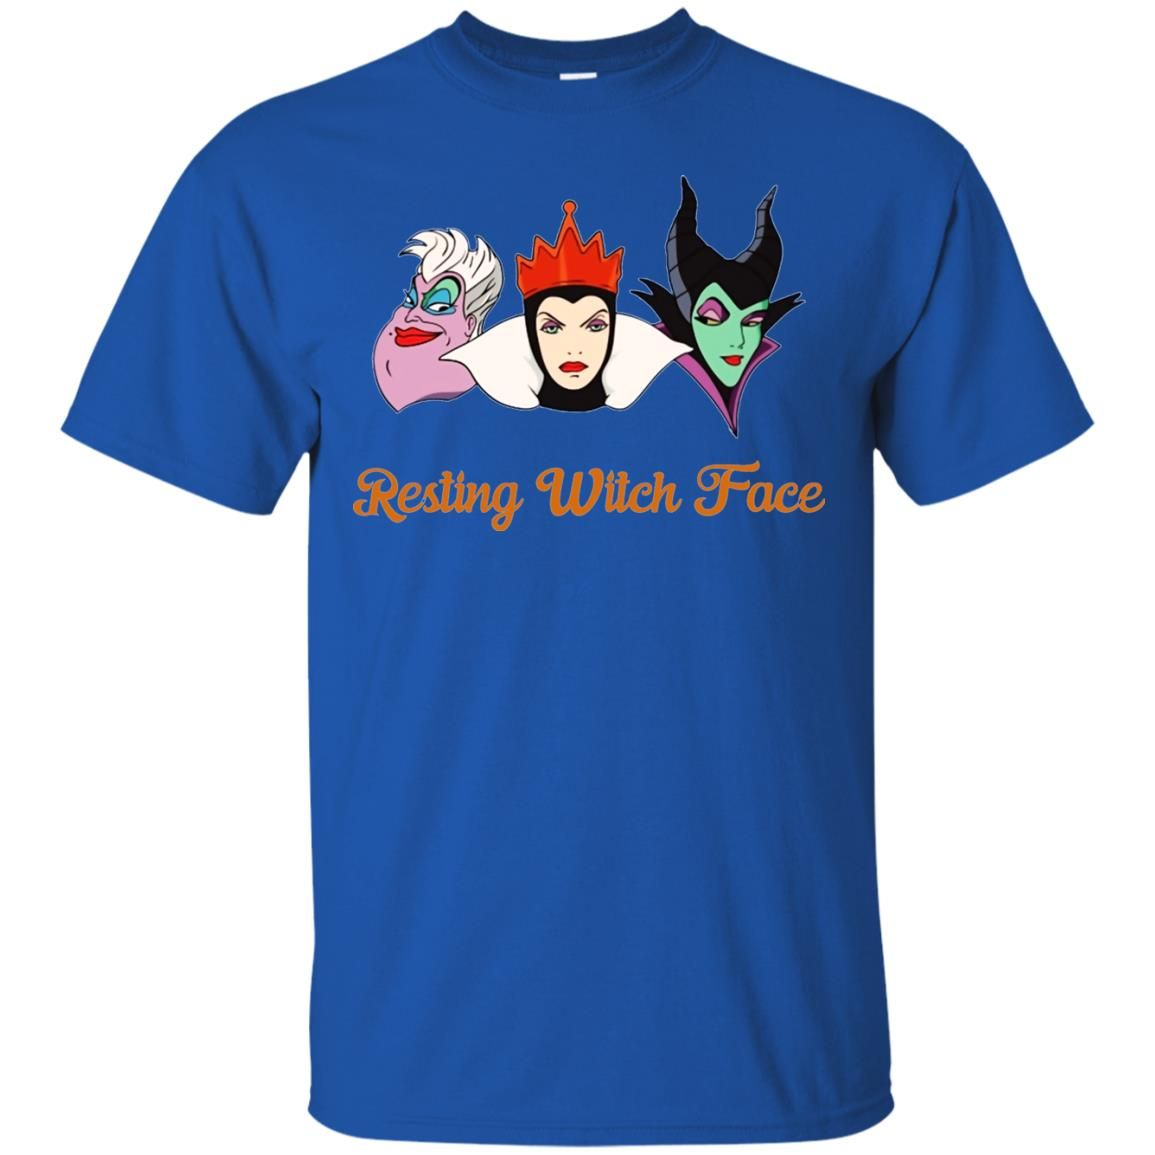 image 1957 - Resting Witch Face shirt for Halloween: Ursula, Maleficent, Evil Queen